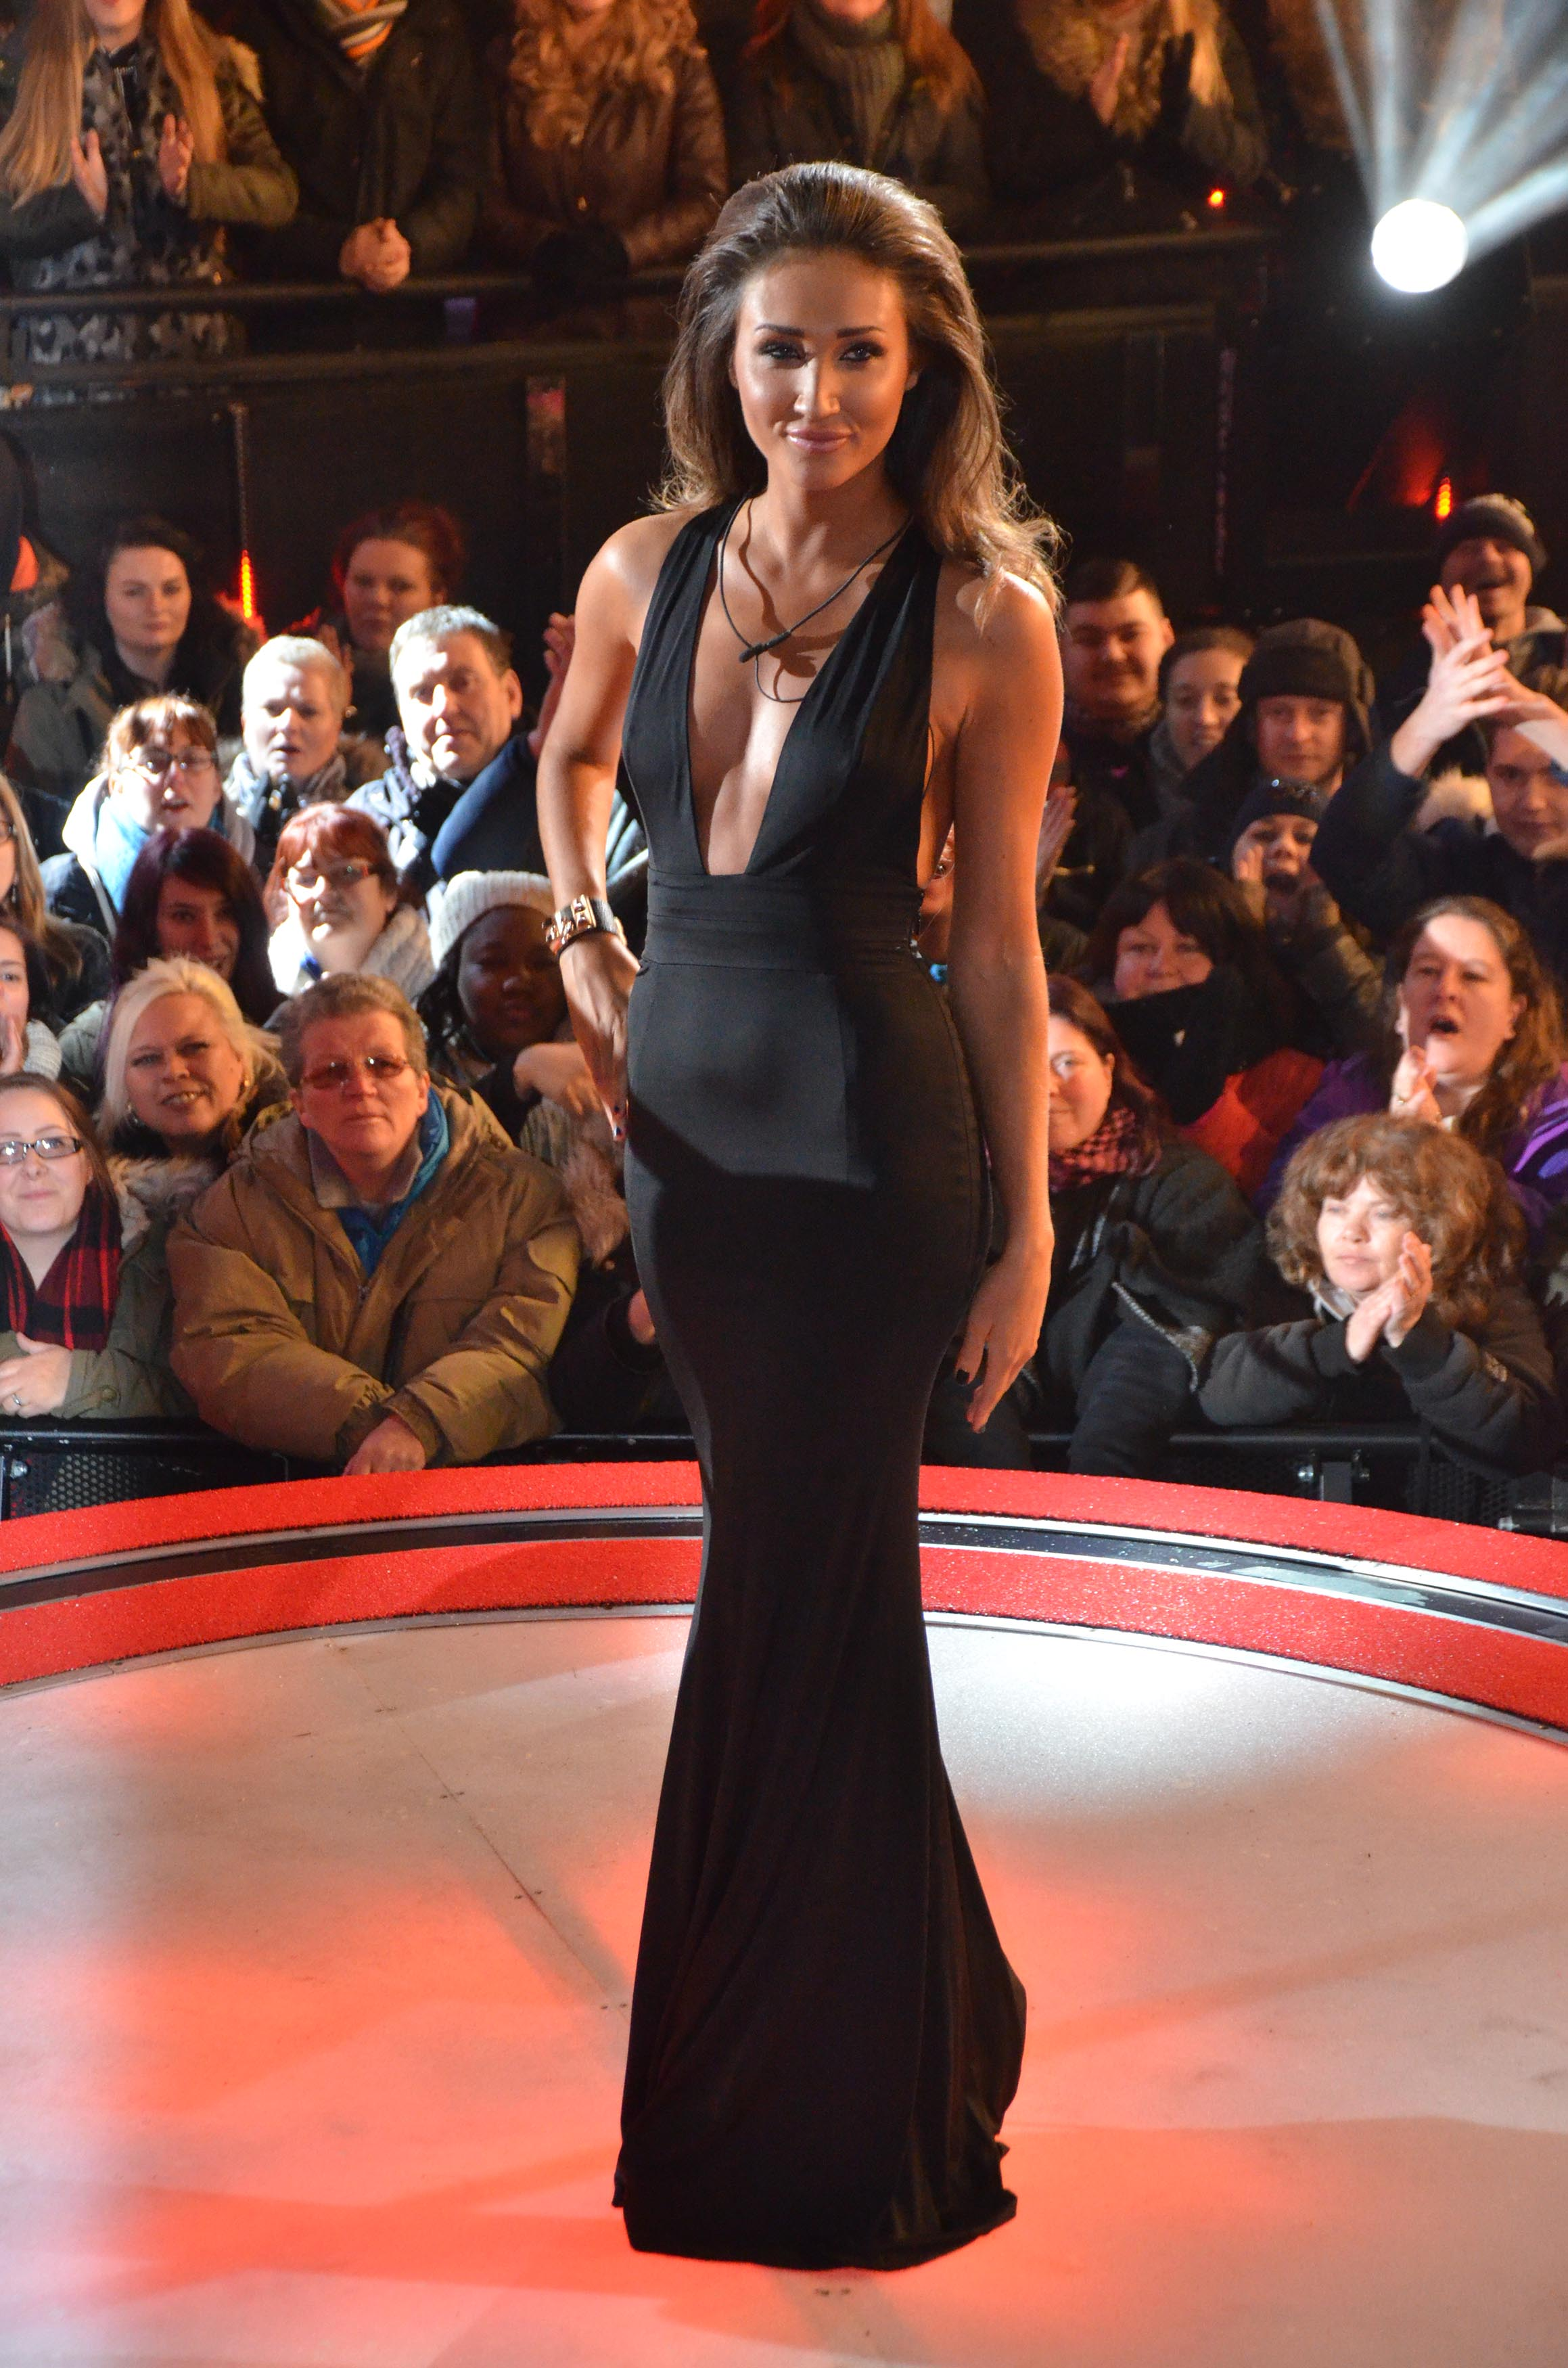 Megan McKenna is the fourth housemate to be evicted from ...